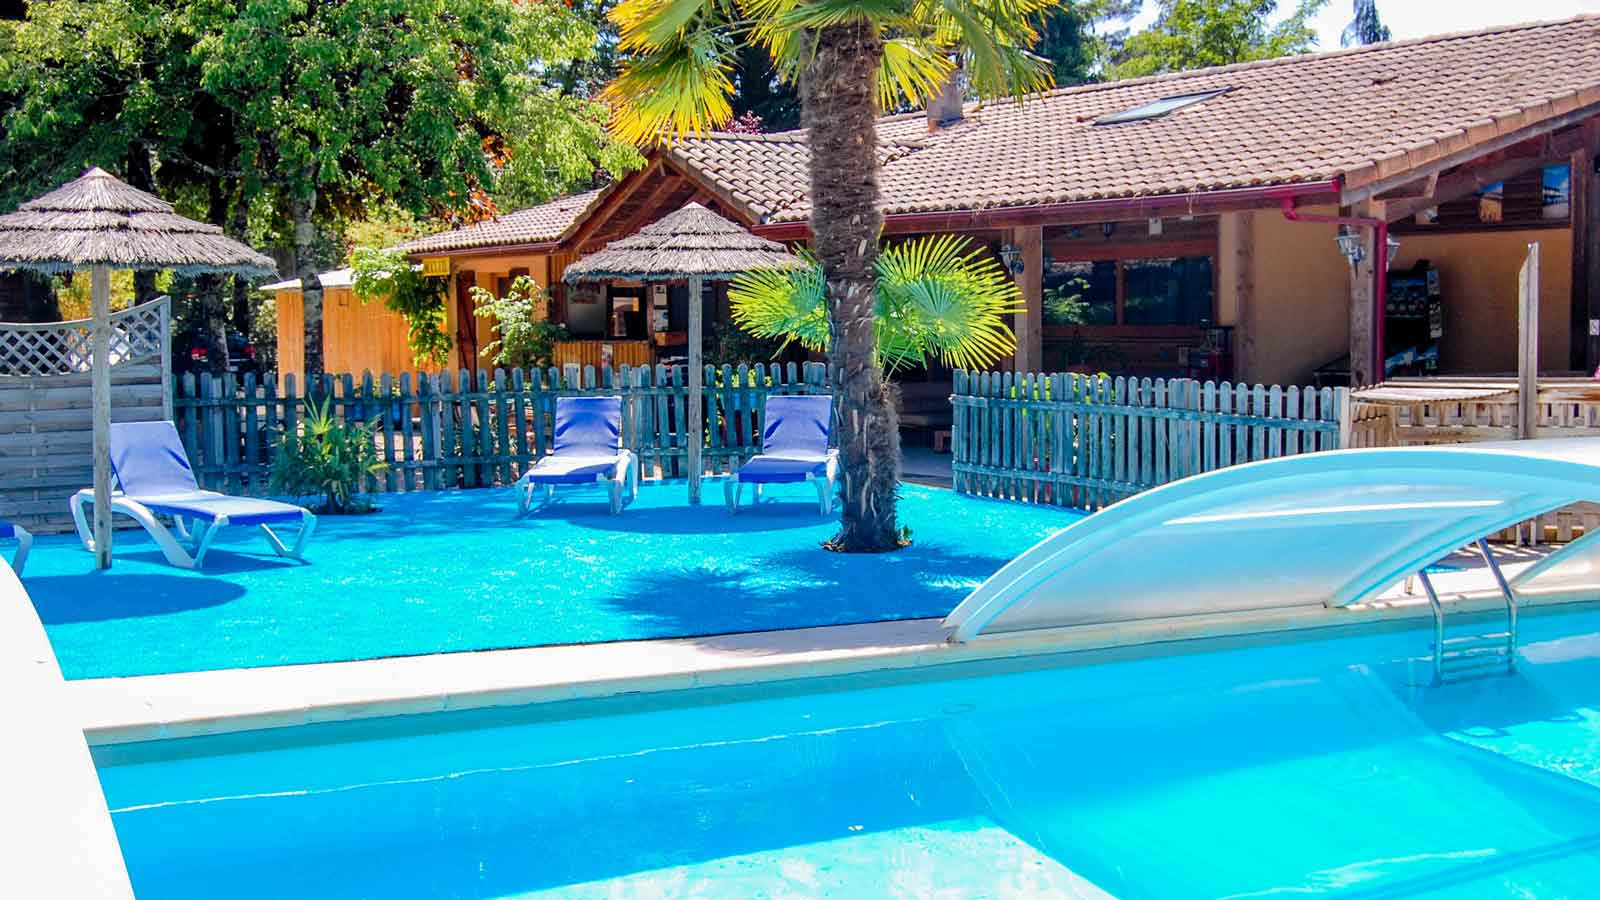 Camping arcachon location mobil home bassin d 39 arcachon - Camping bassin d arcachon piscine ...